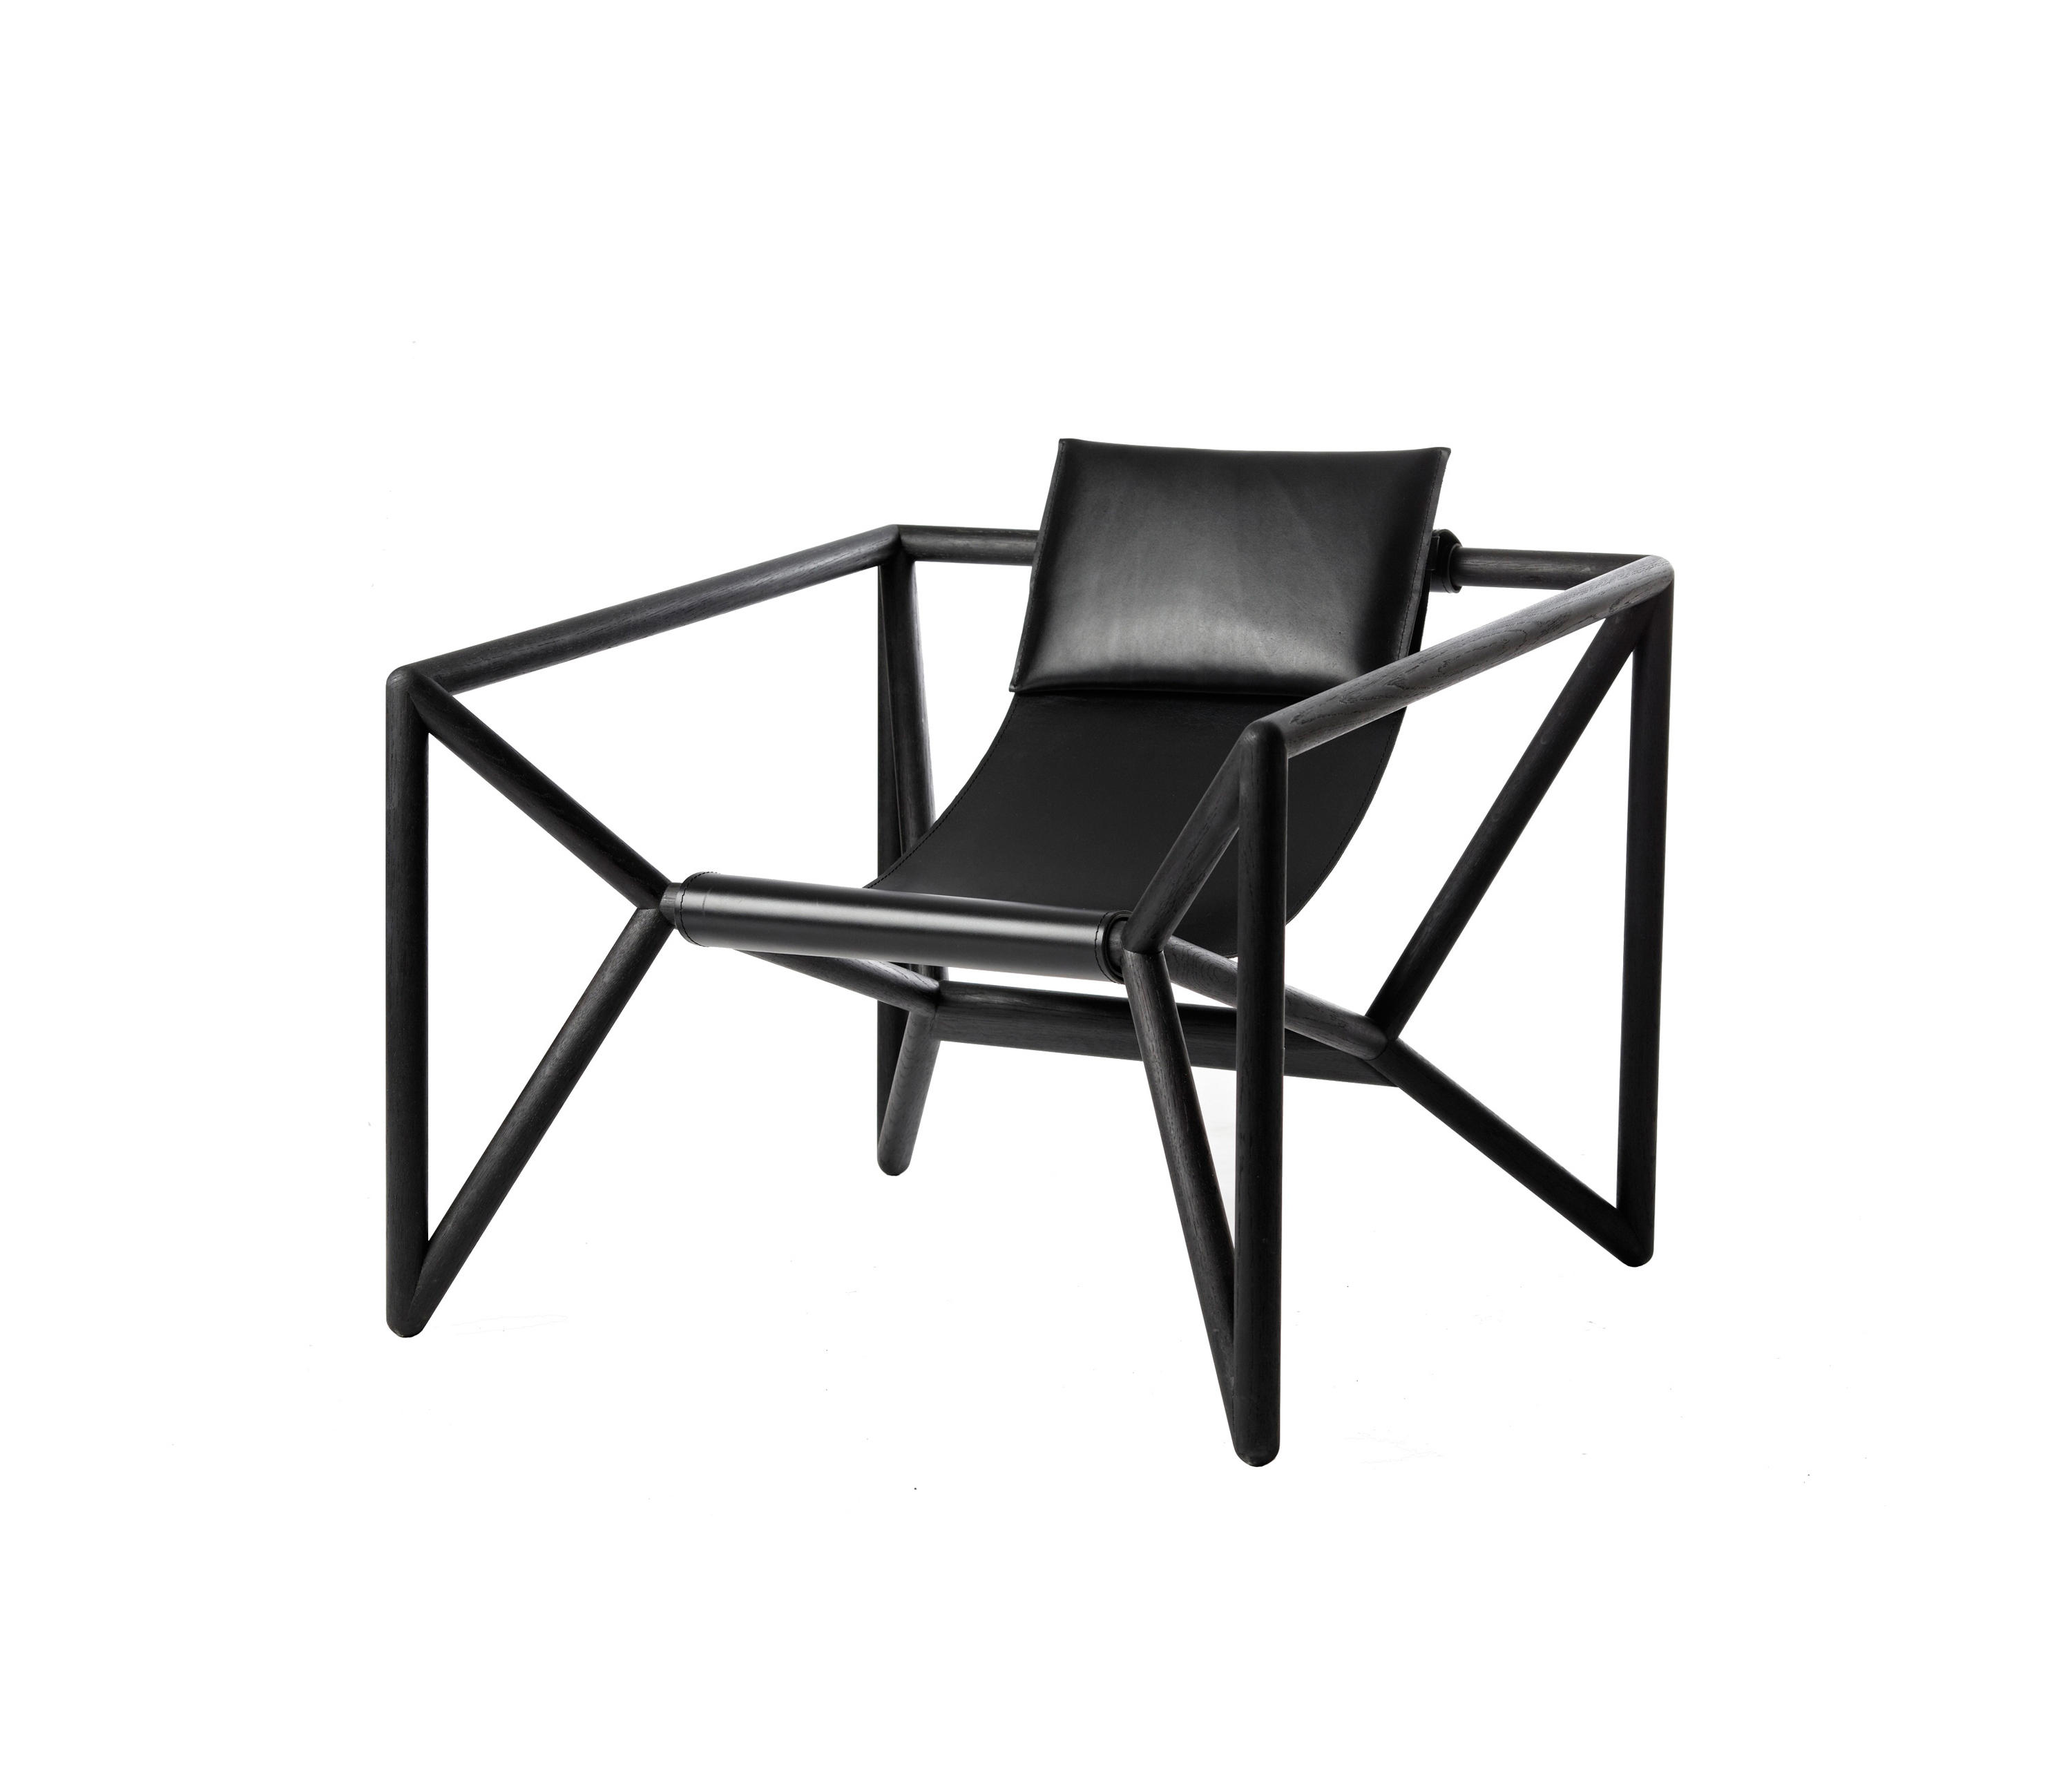 m3 loungechair armchairs from neue wiener werkst tte architonic. Black Bedroom Furniture Sets. Home Design Ideas